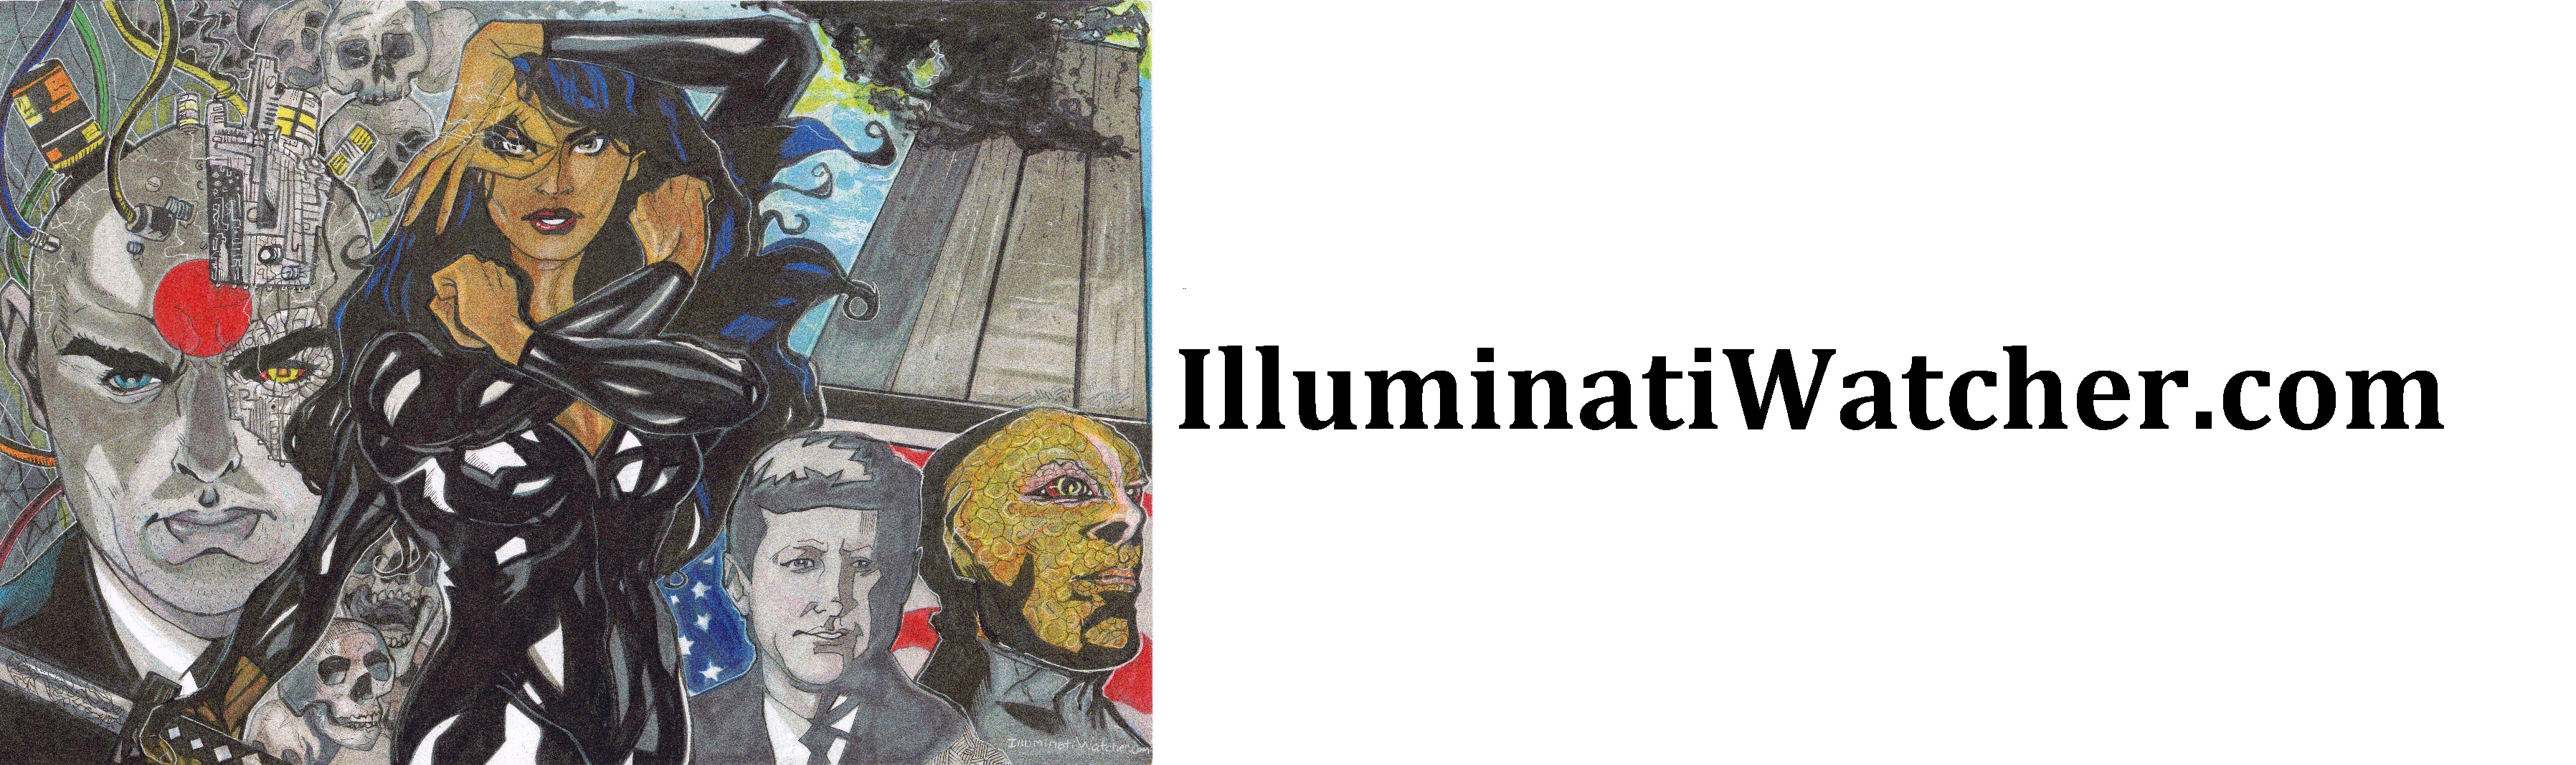 IlluminatiWatcher